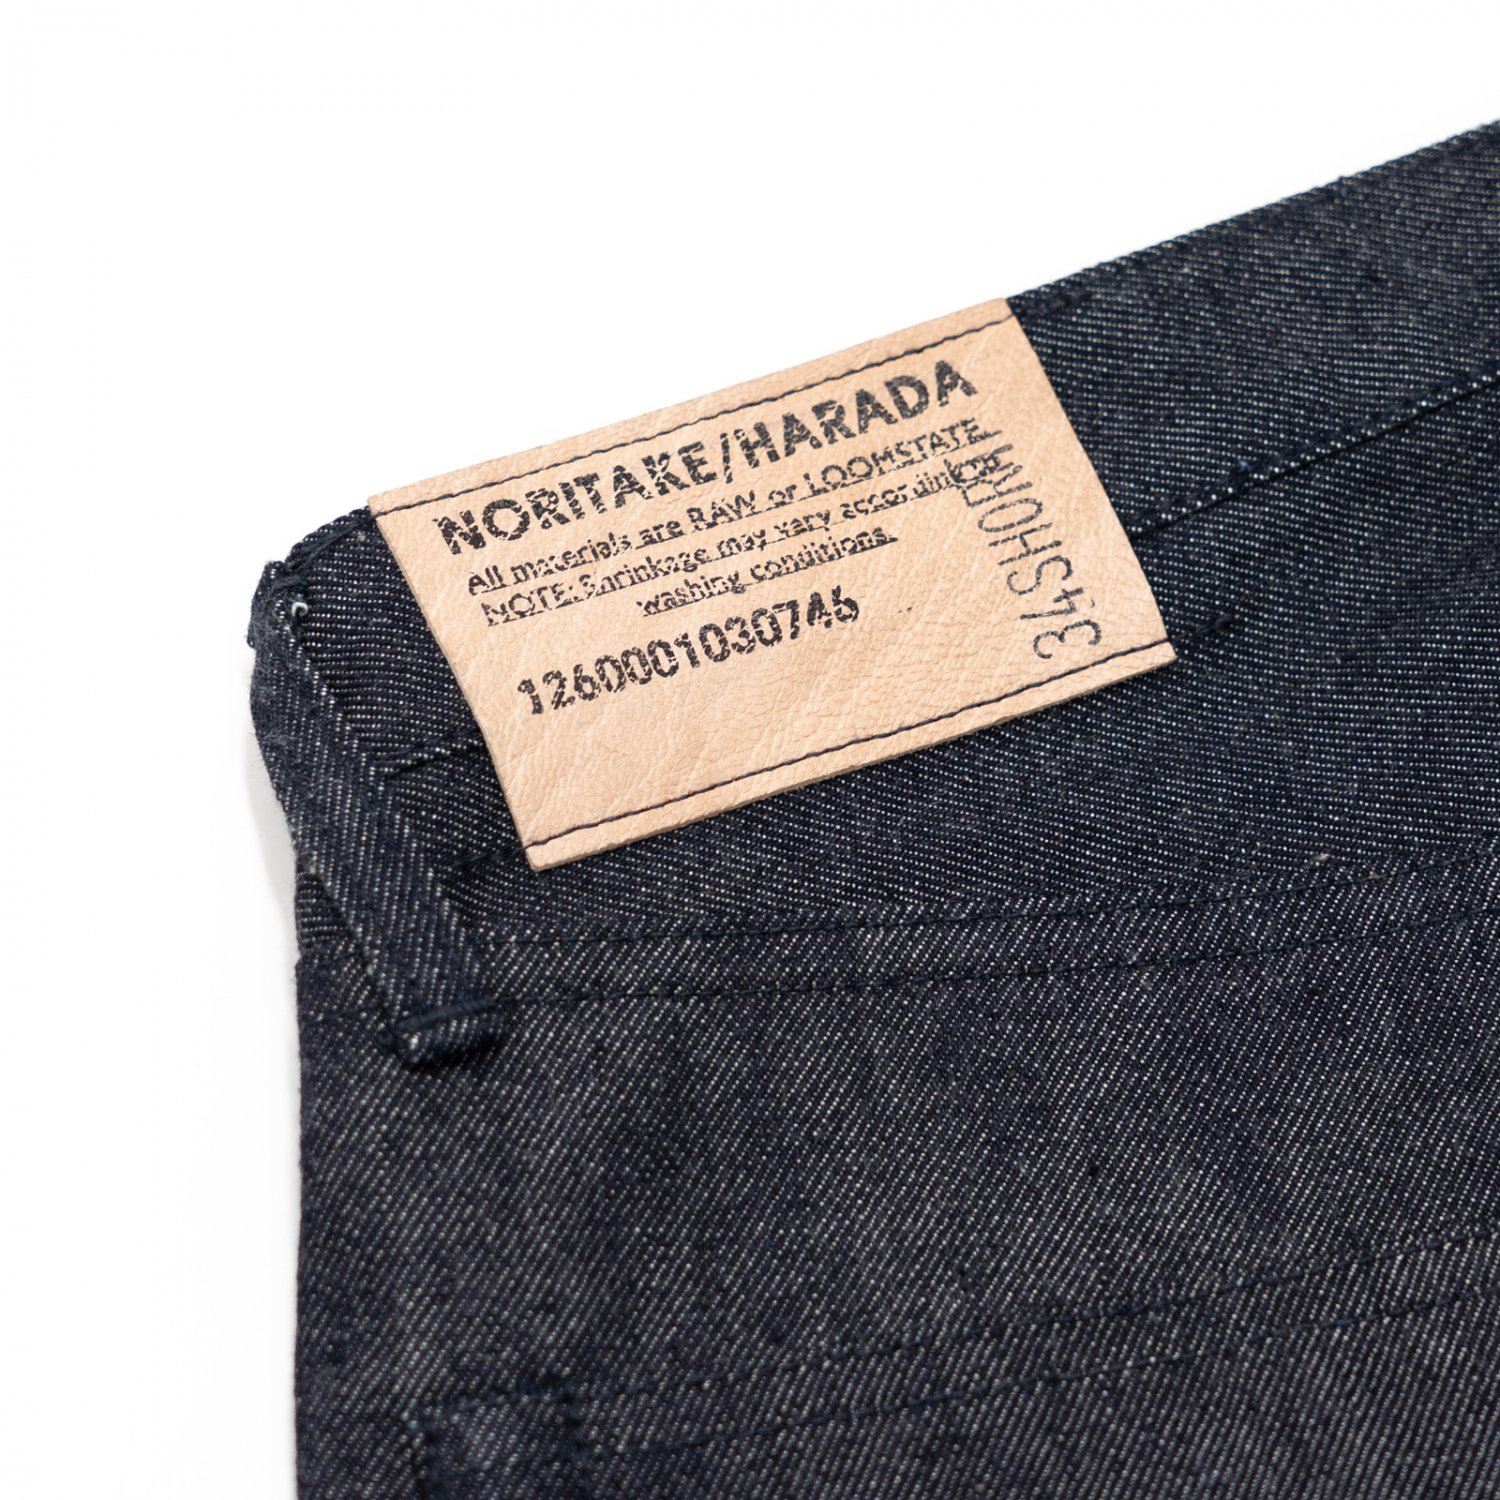 NORITAKE/HARADA * Denim Pants 34inch Short